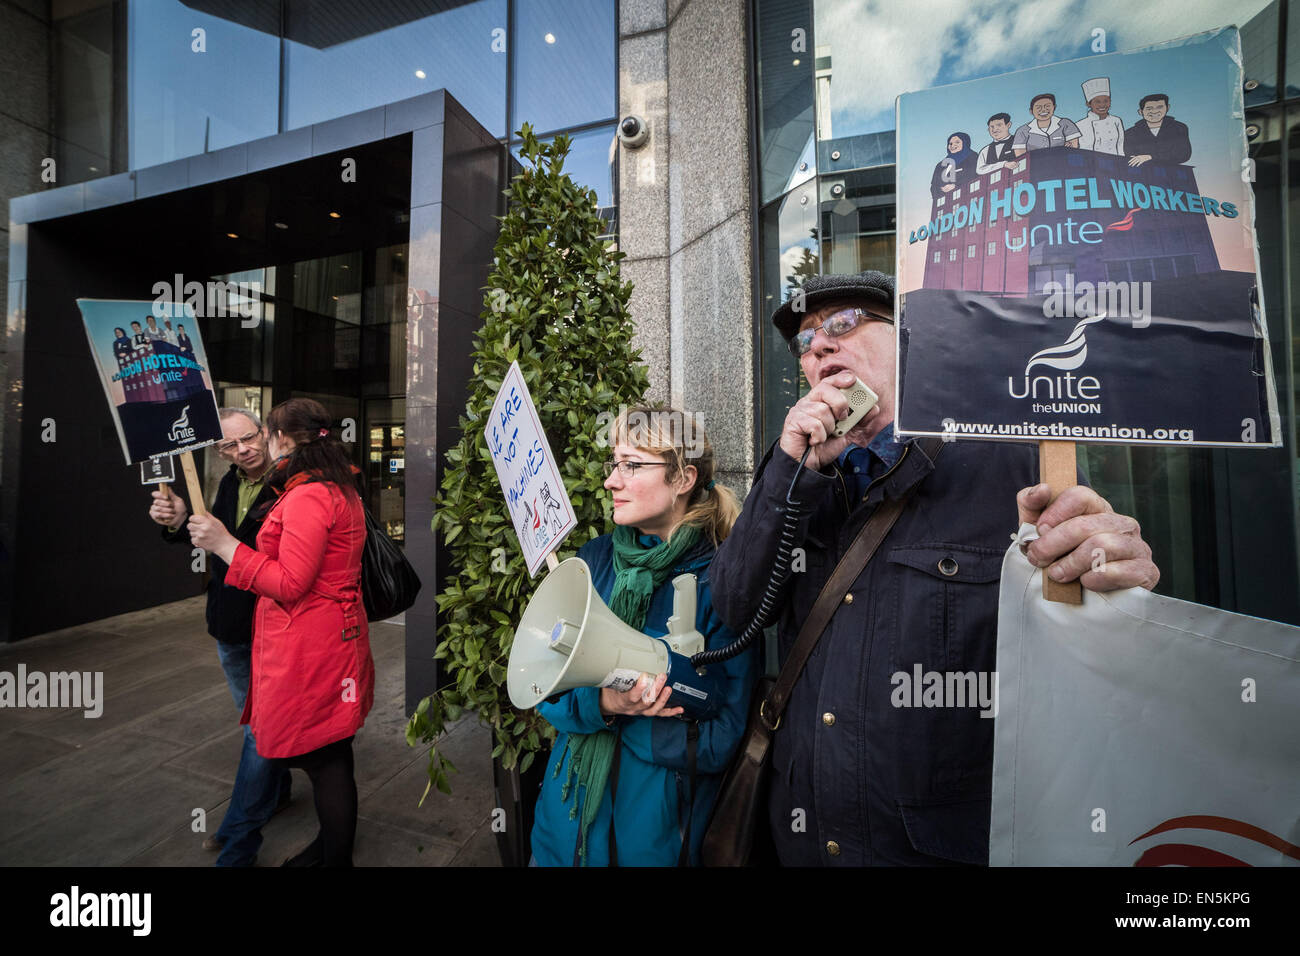 London, UK. 28th April, 2015. Workers Protest outside Hilton Metropole Hotel Credit:  Guy Corbishley/Alamy Live - Stock Image